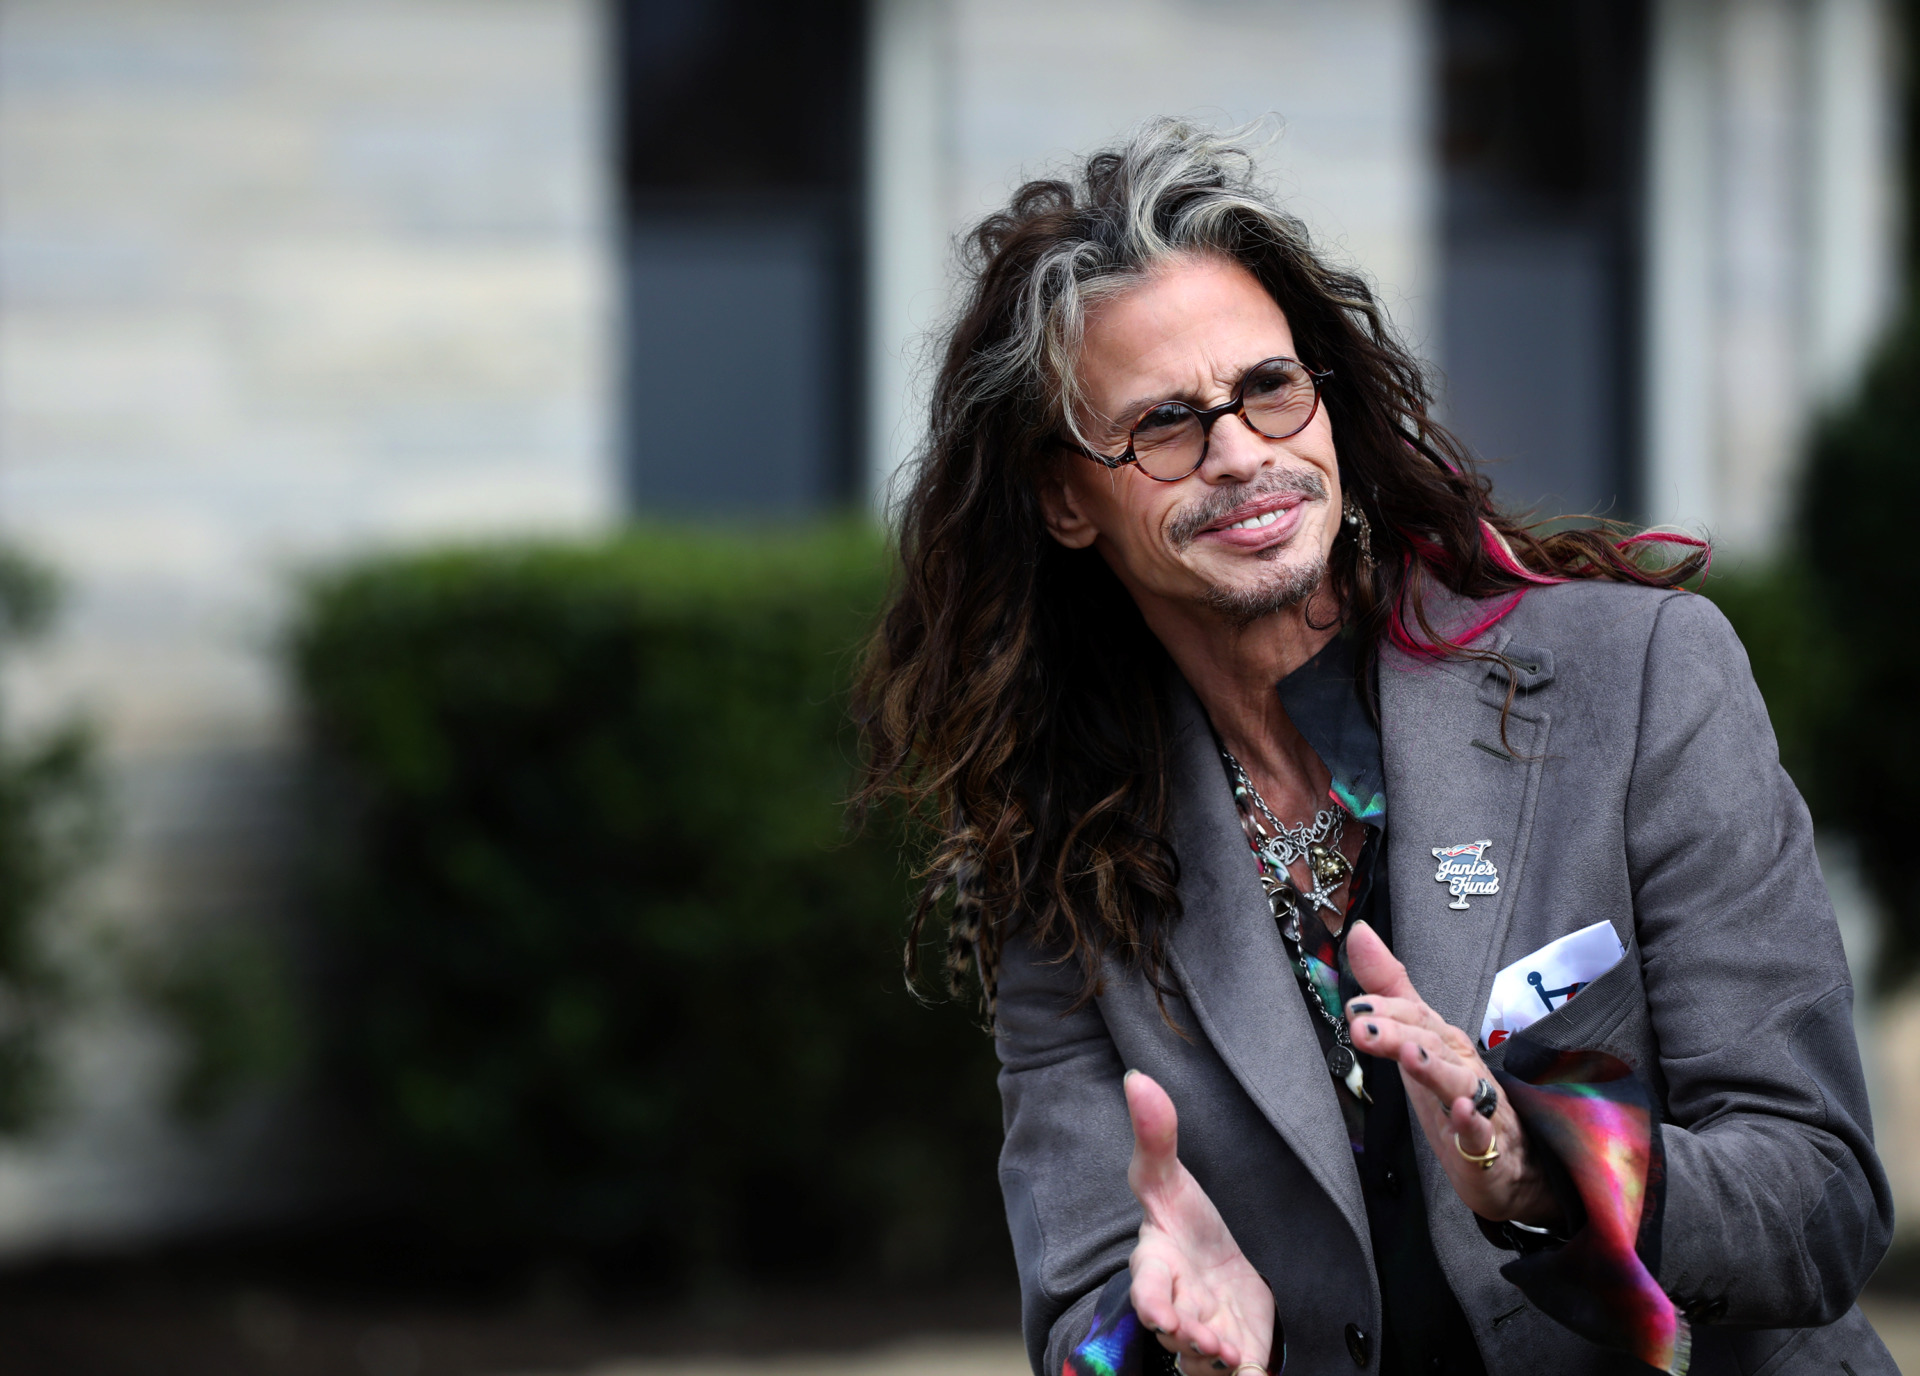 <strong>Aerosmith frontman Steven Tyler greets visitors and media Monday, Feb. 4, 2019, at the grand opening of Janie's House, a residence for abused and neglected girls on Youth Villages' Bartlett campus. Tyler has contributed close to half a million dollars to Youth Villages through his philanthropy, Janie's Fund.&nbsp;</strong>(Houston Cofield/Daily Memphian)